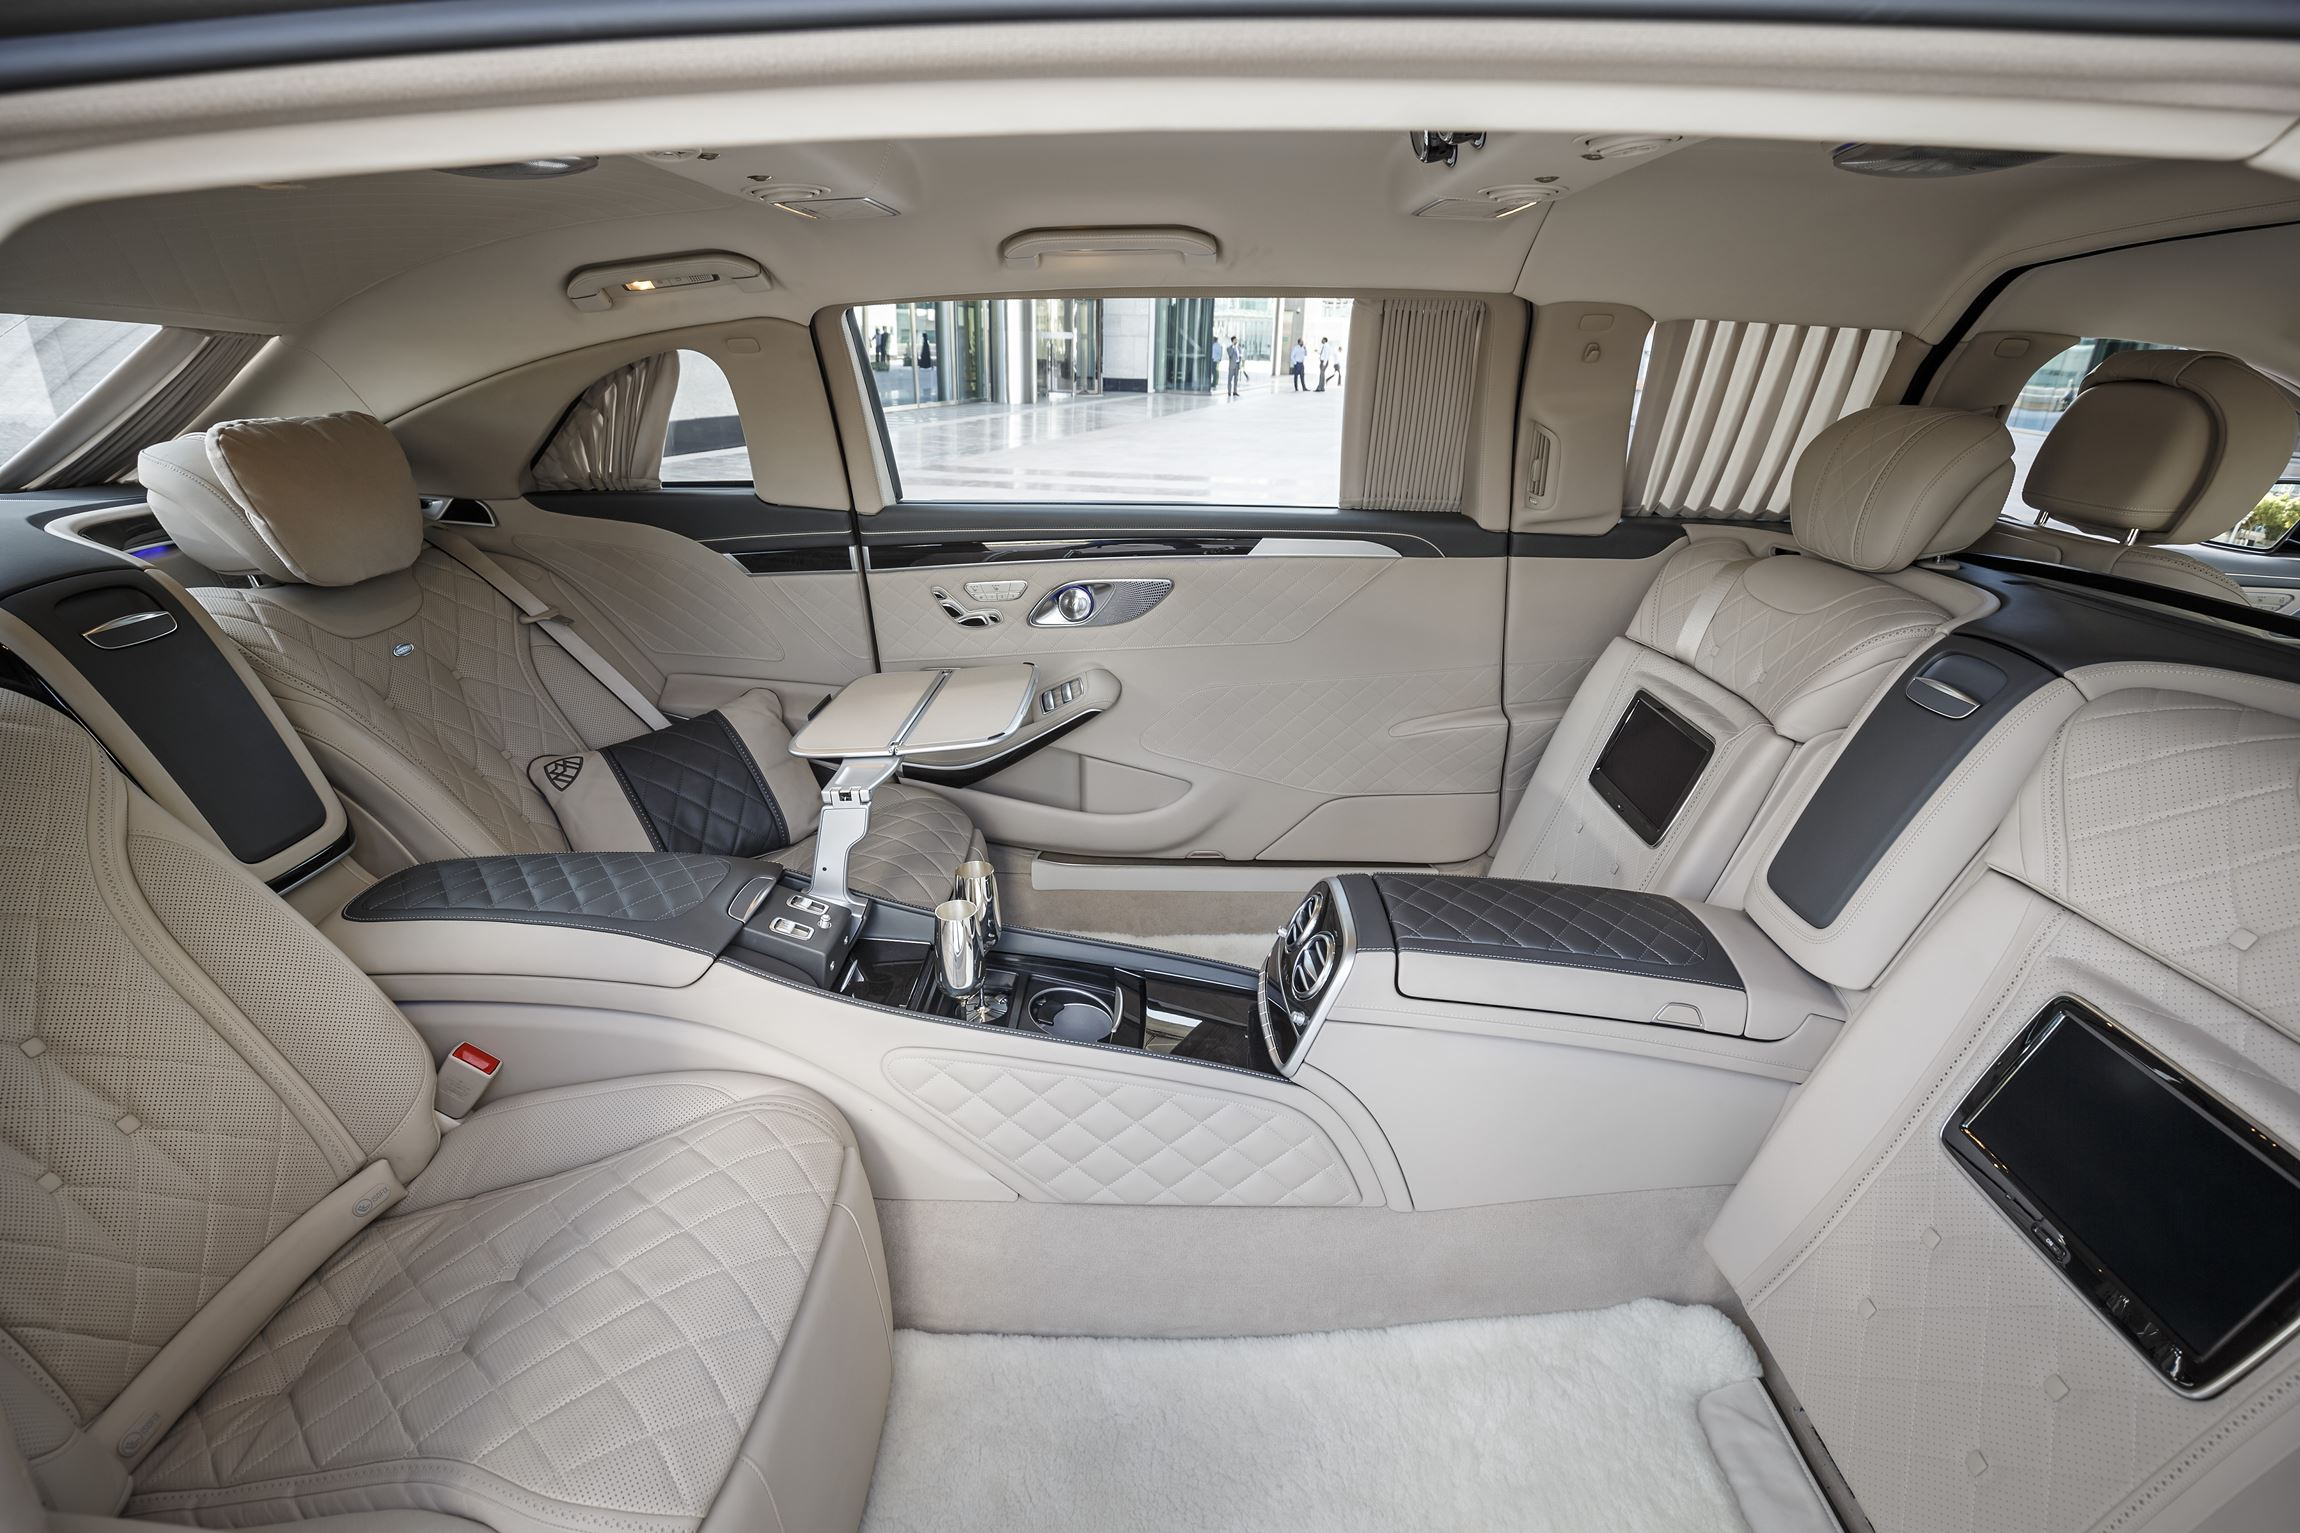 http://www.car-revs-daily.com/wp-content/uploads/2016-Mercedes-Maybach-PULLMAN-Limo-7.jpg